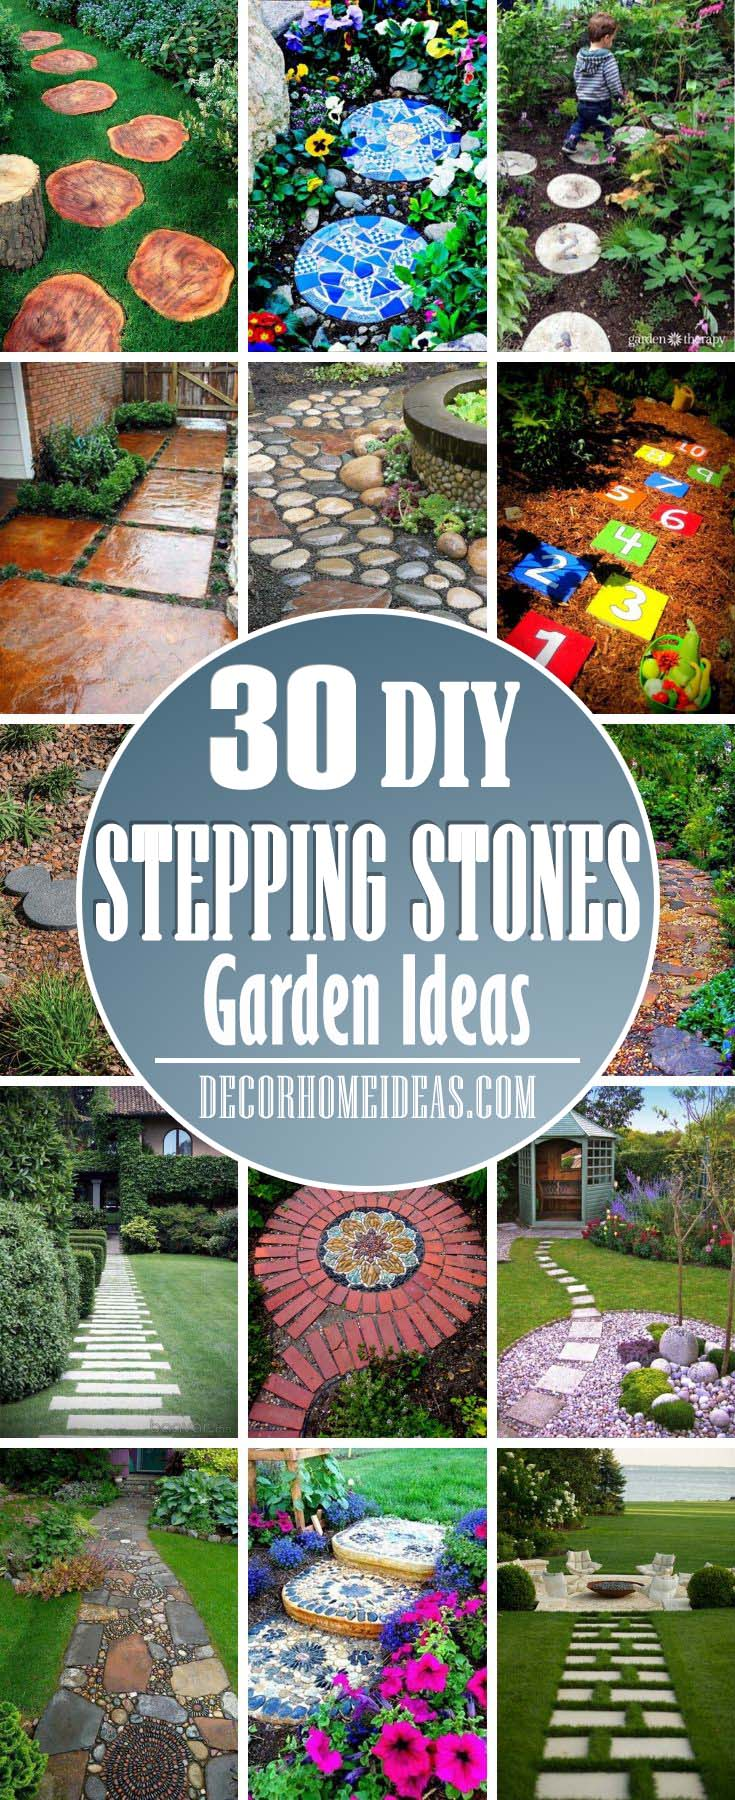 Stepping Stones Garden Ideas. Make a beautiful garden or backyard pathway with rocks and stones. DIY walkway with stepping stones or pebbles. #diy #stones #rocks #walkway #garden #decorhomeideas